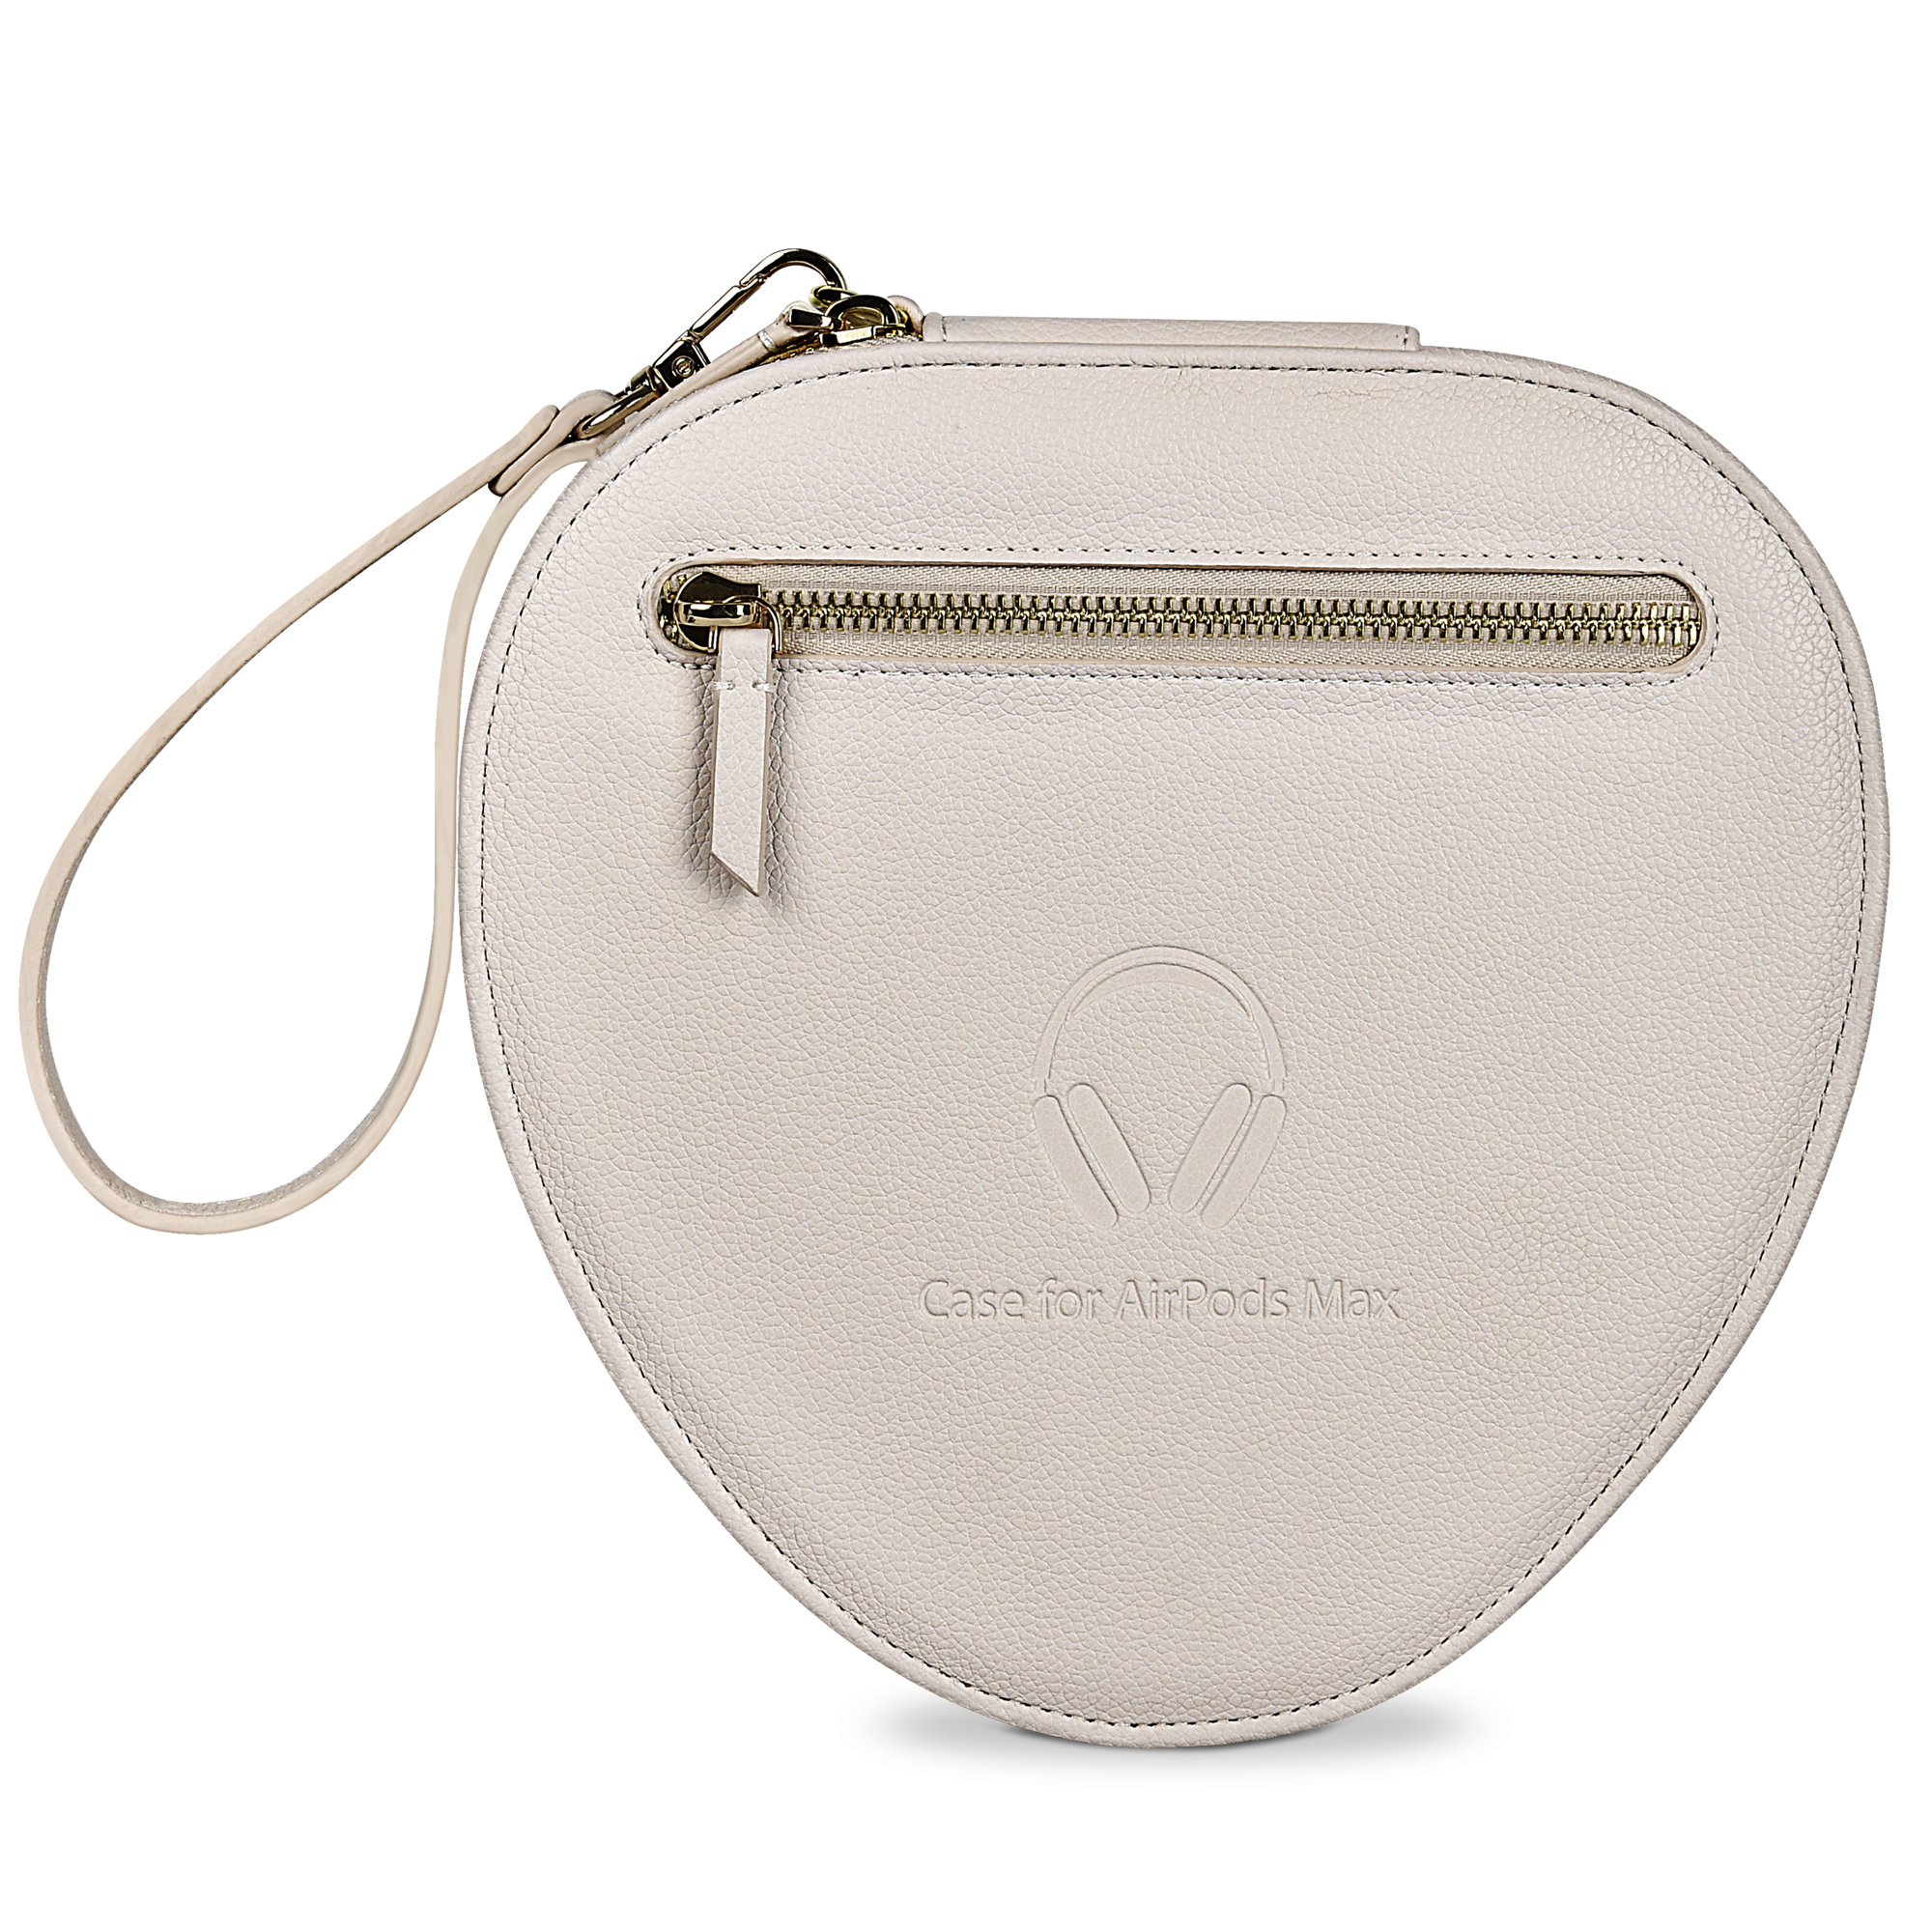 WiWU Travel Protective Case for Airpods Max